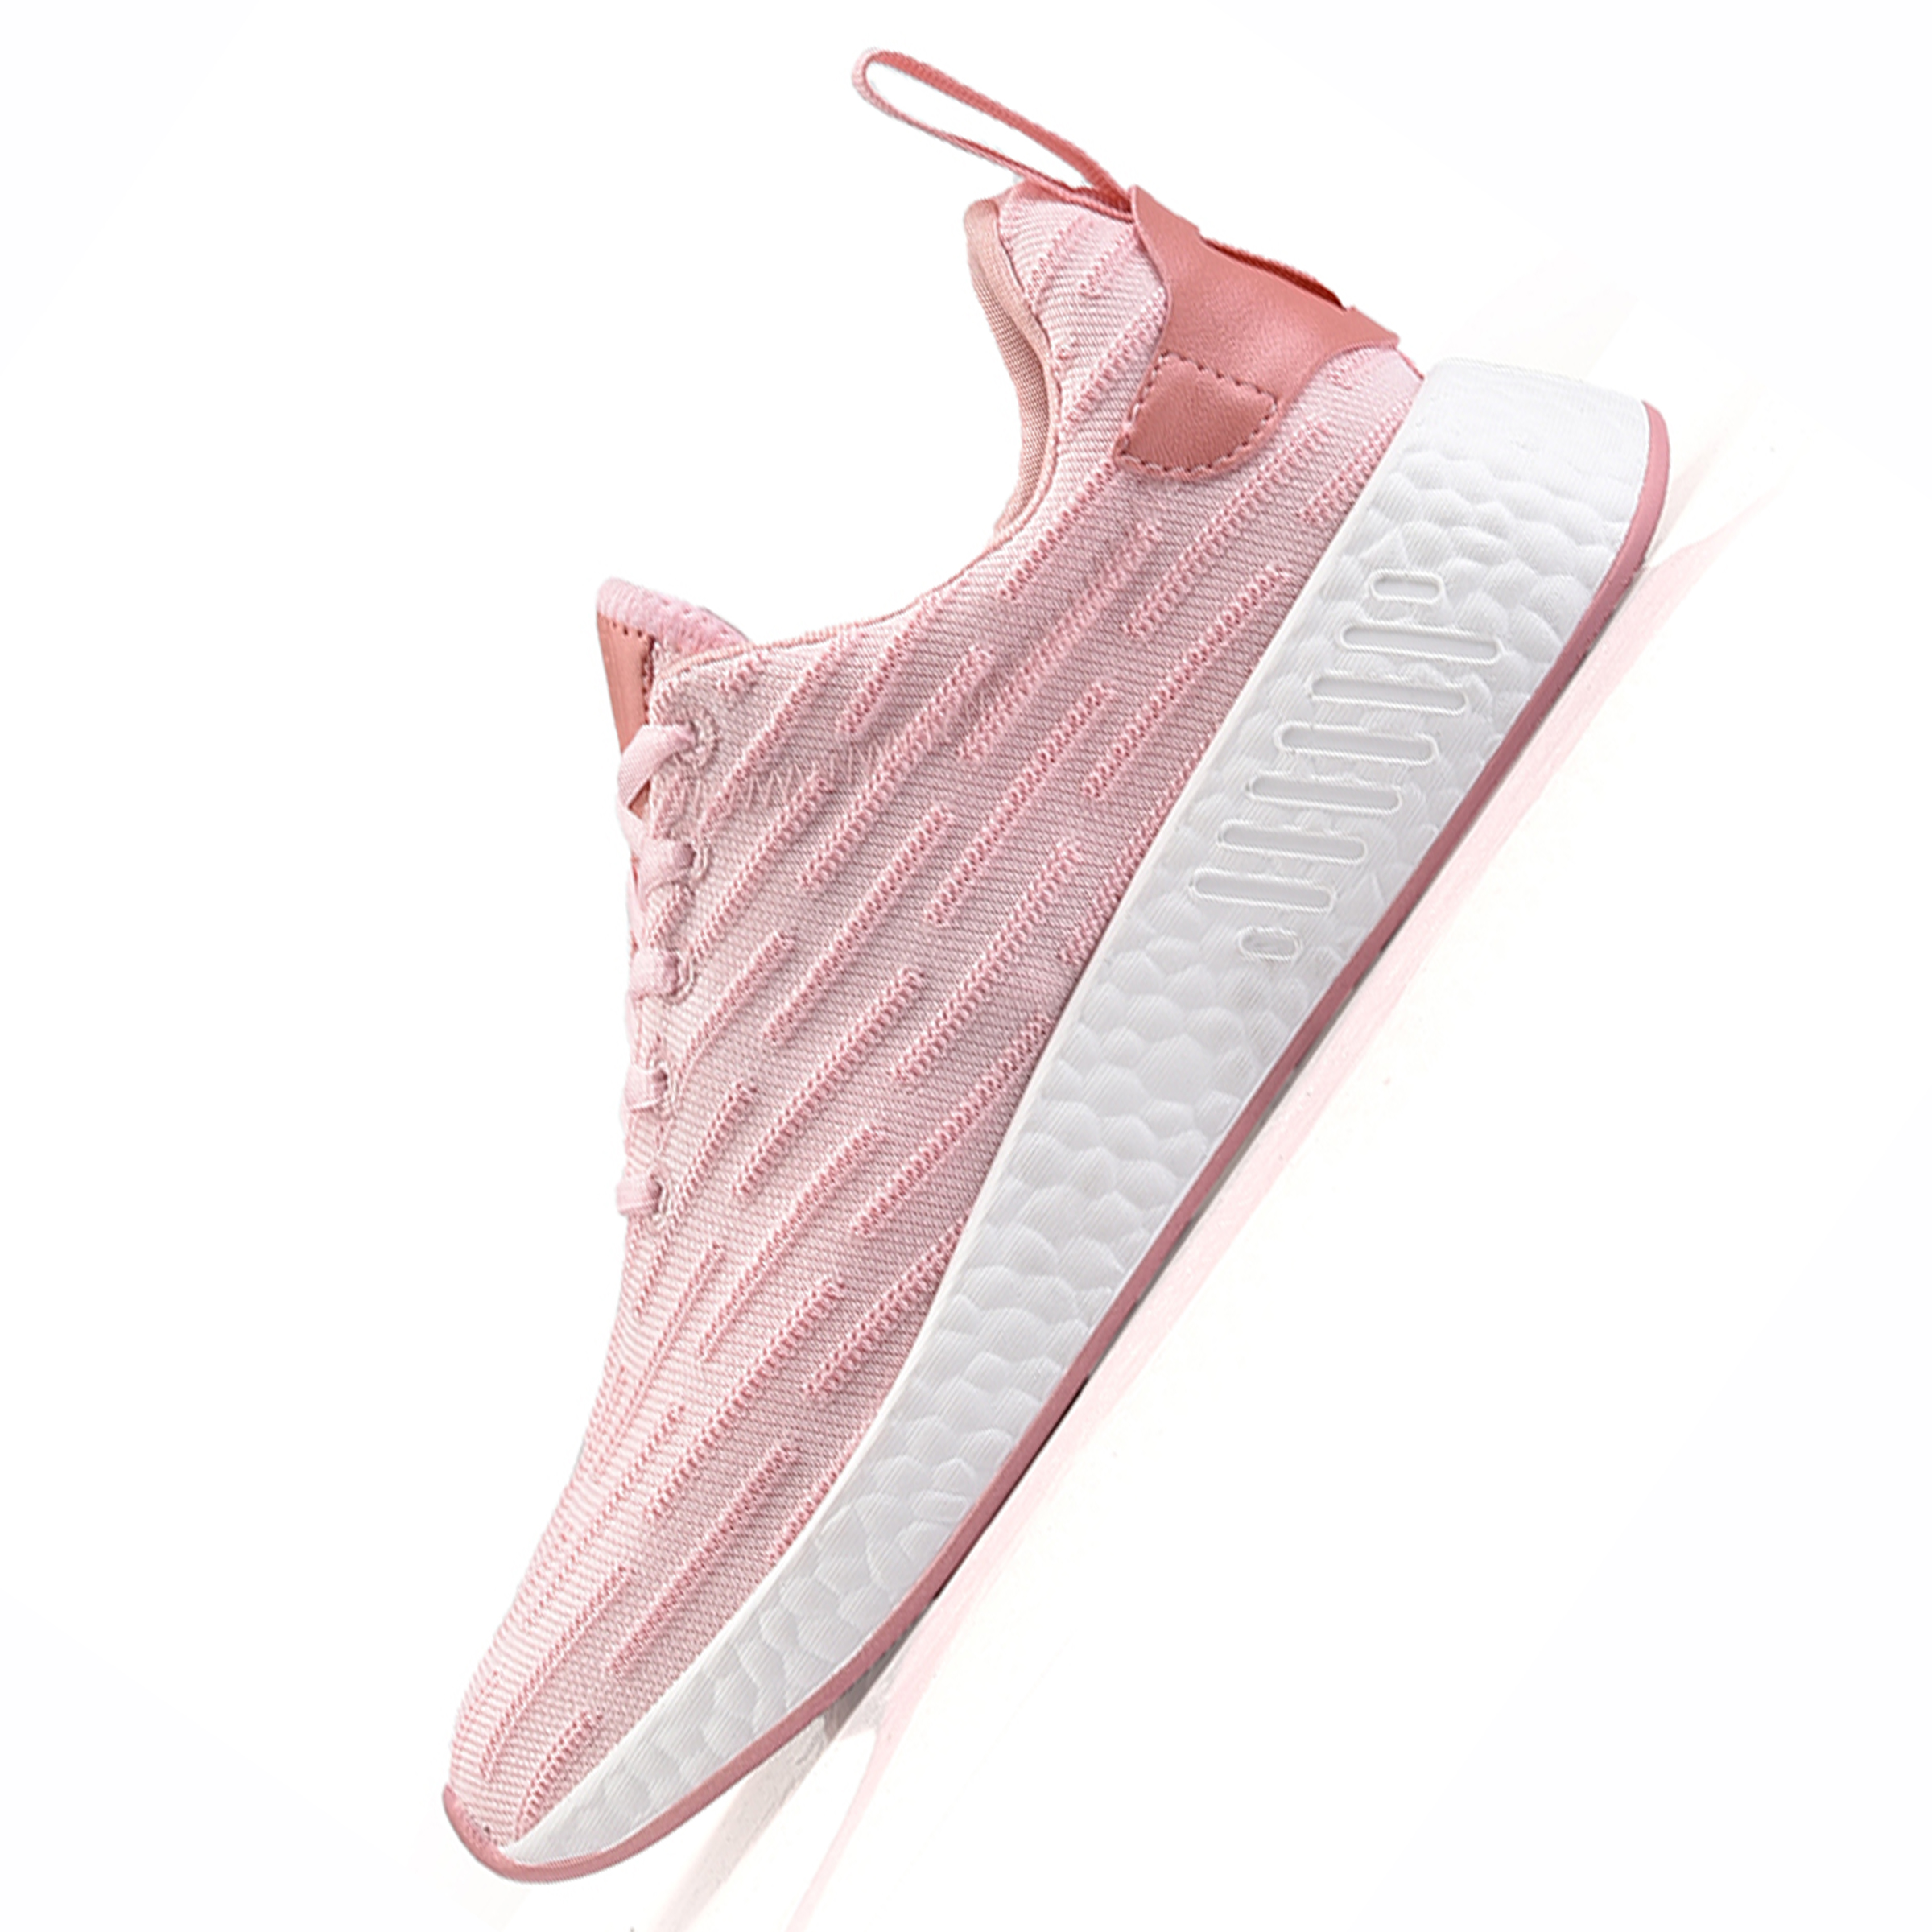 Summer Spring Zapato Women Breathable Mesh Zapatillas Brand Shoes Women Network Soft Ladies Casual Shoes Wild Flats Lady Shoes  nis women air mesh shoes pink black red blue white flat casual shoe breathable hollow out flats ladies soft light zapatillas